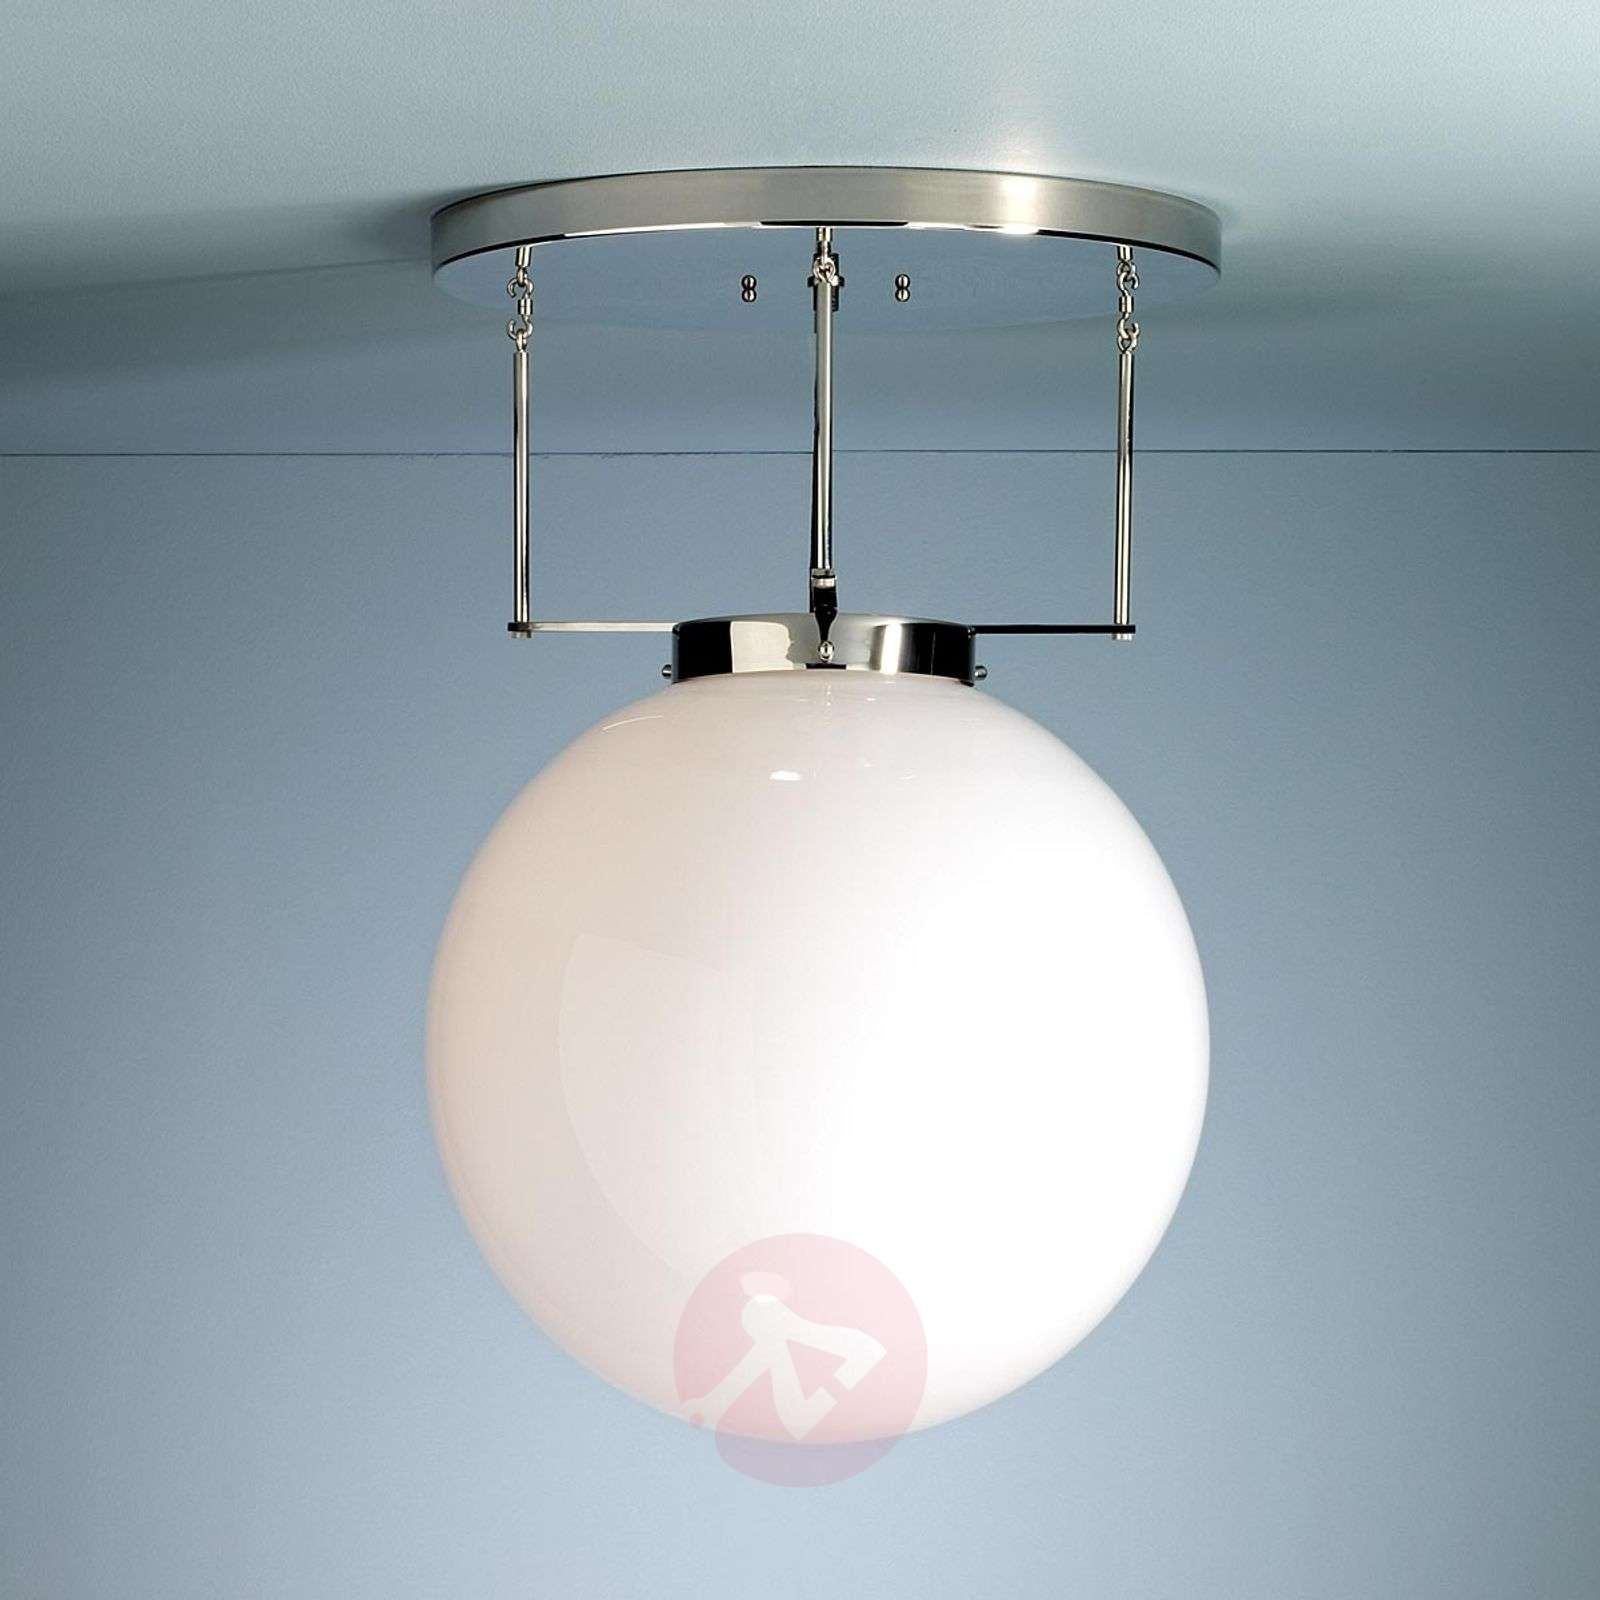 Brandt's ceiling light in Bauhaus style, nickel-9030113X-01